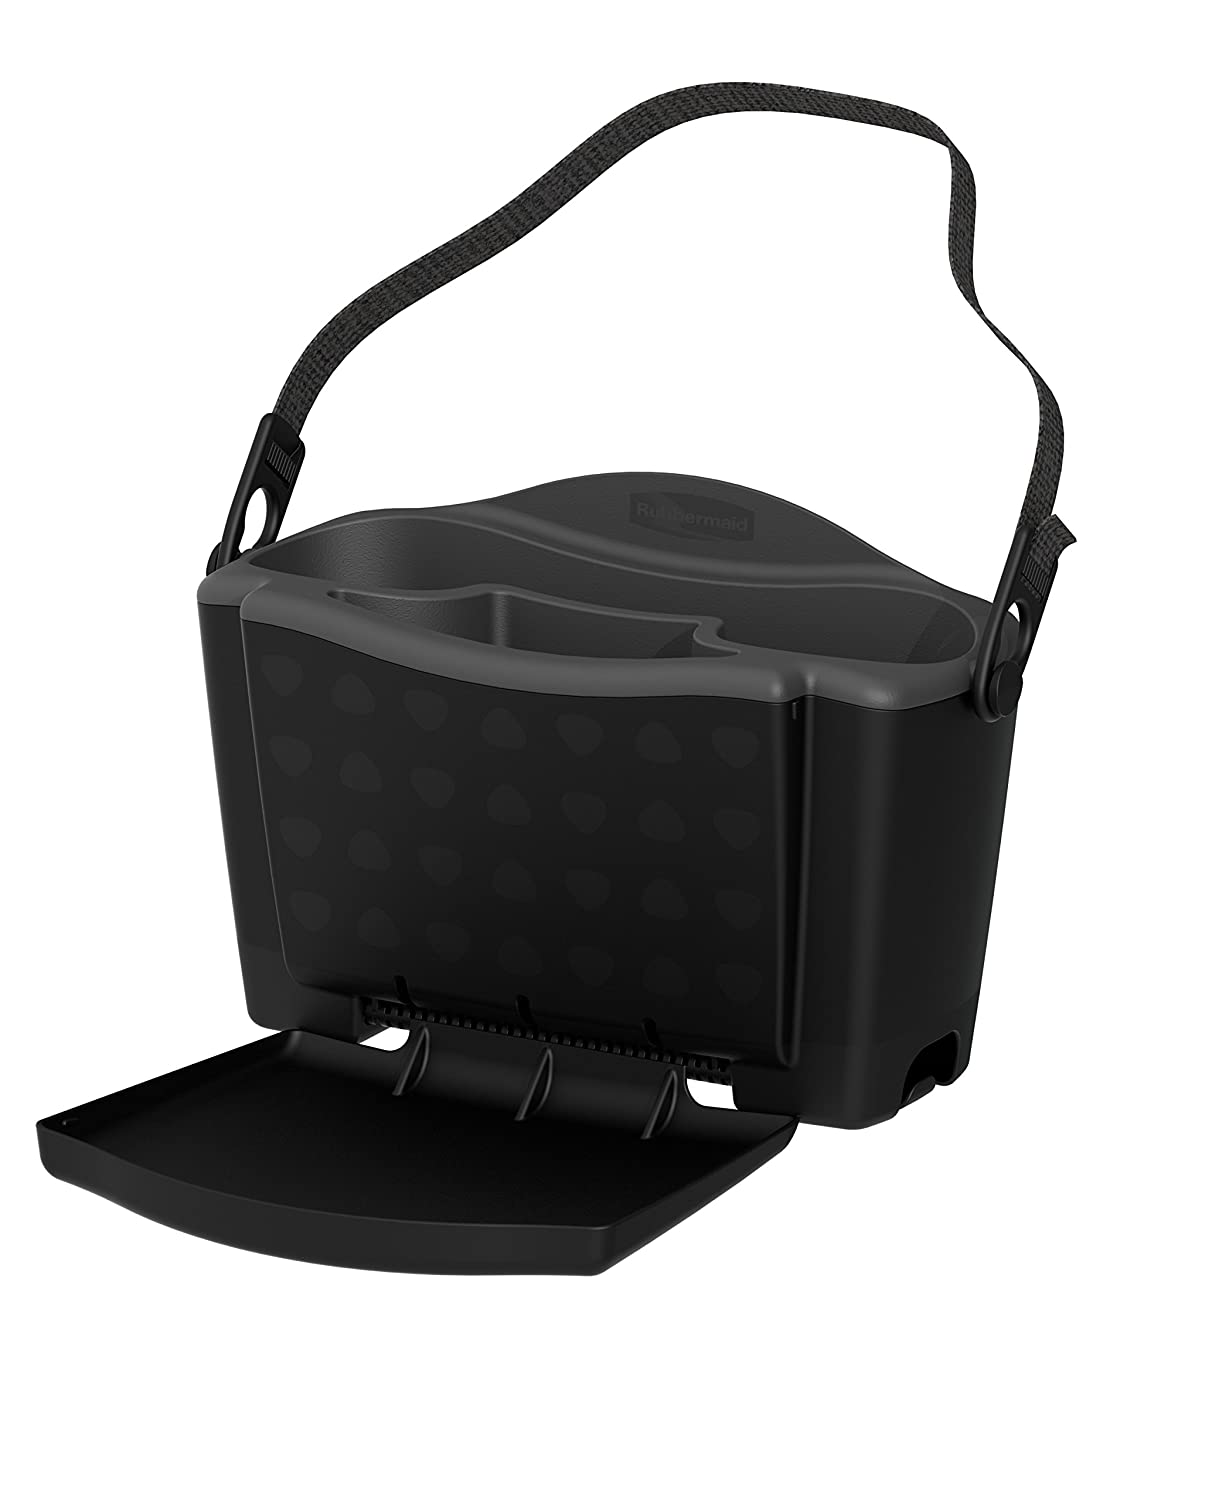 Rubbermaid 3318-20 Automotive Back Seat Organizer/Hanging Car Caddy with Folding Tray Table and Cup Holders